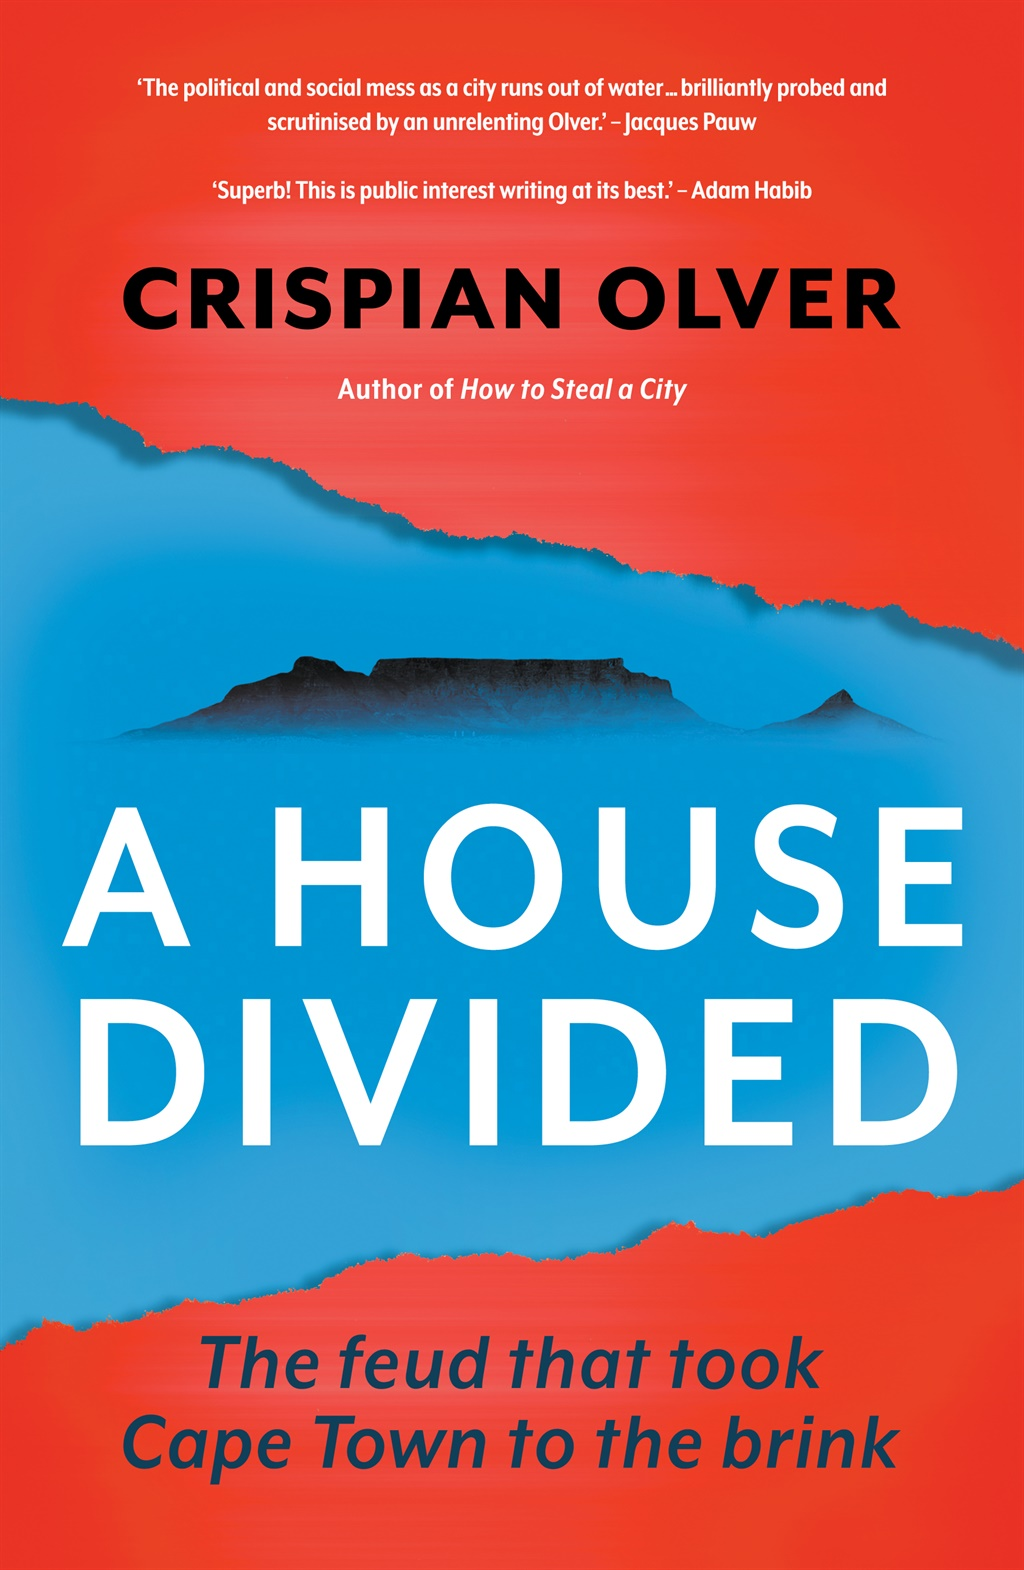 A House Divided by Crispian Olver published by Jonathan Ball Publishers.